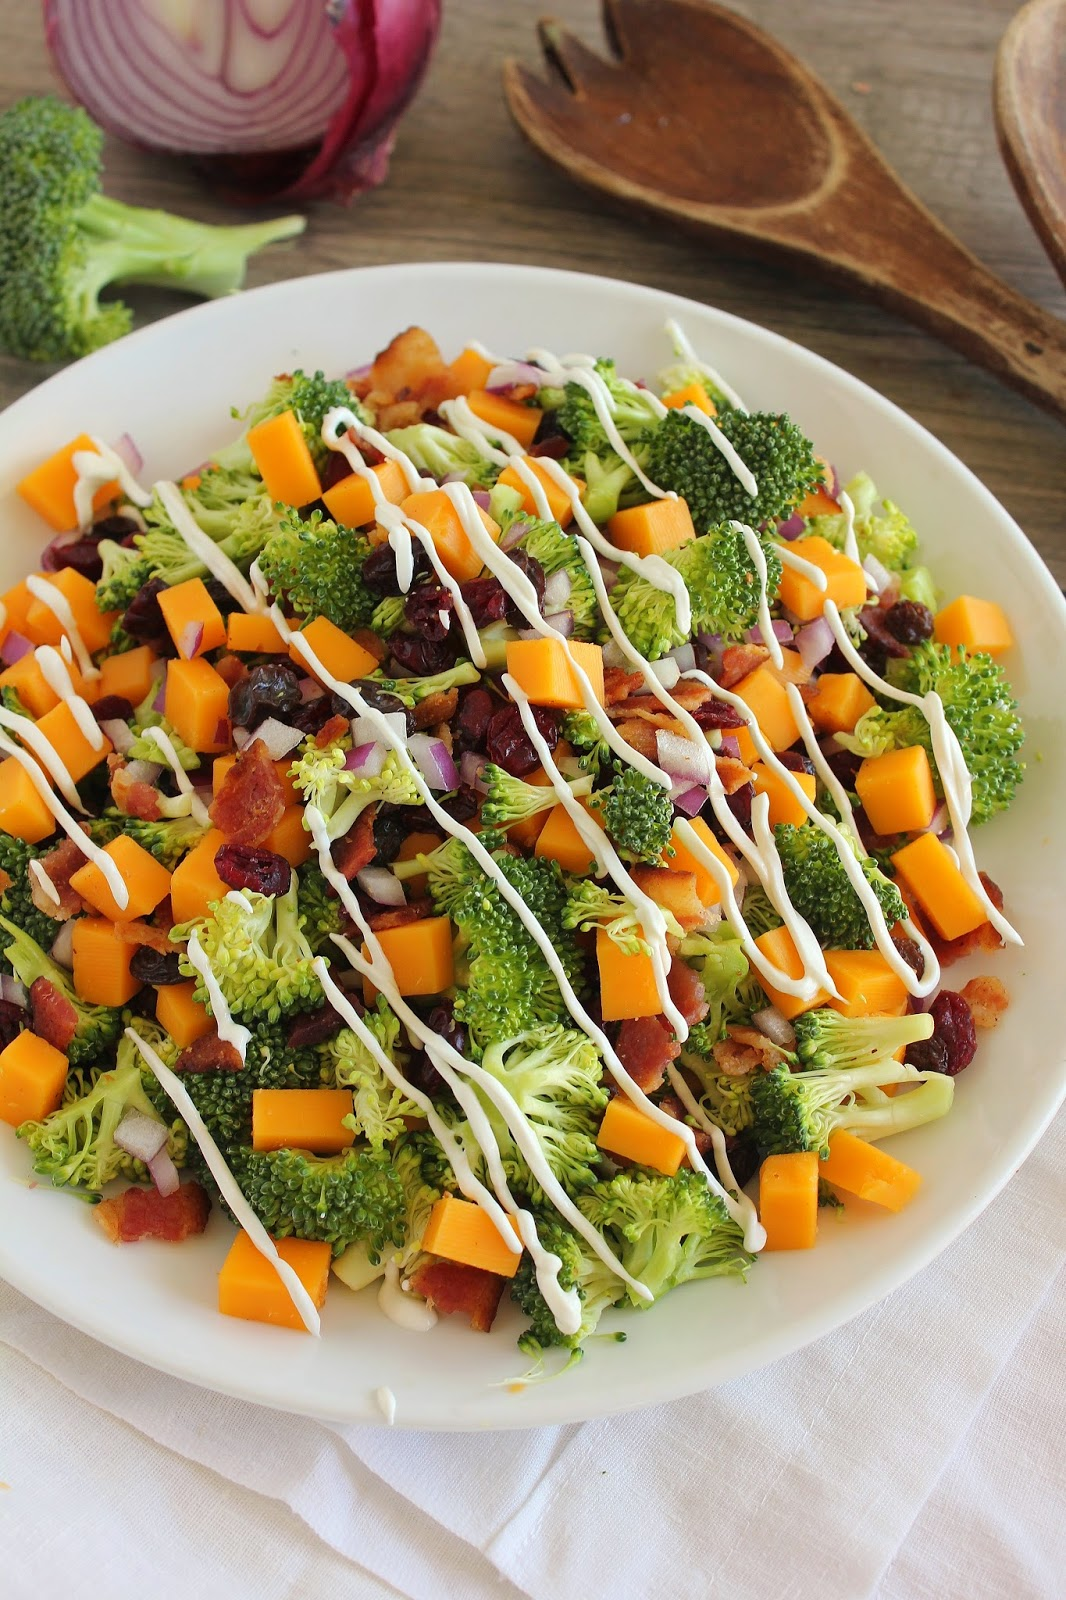 Fresh Broccoli Salad With Cheddar And Bacon